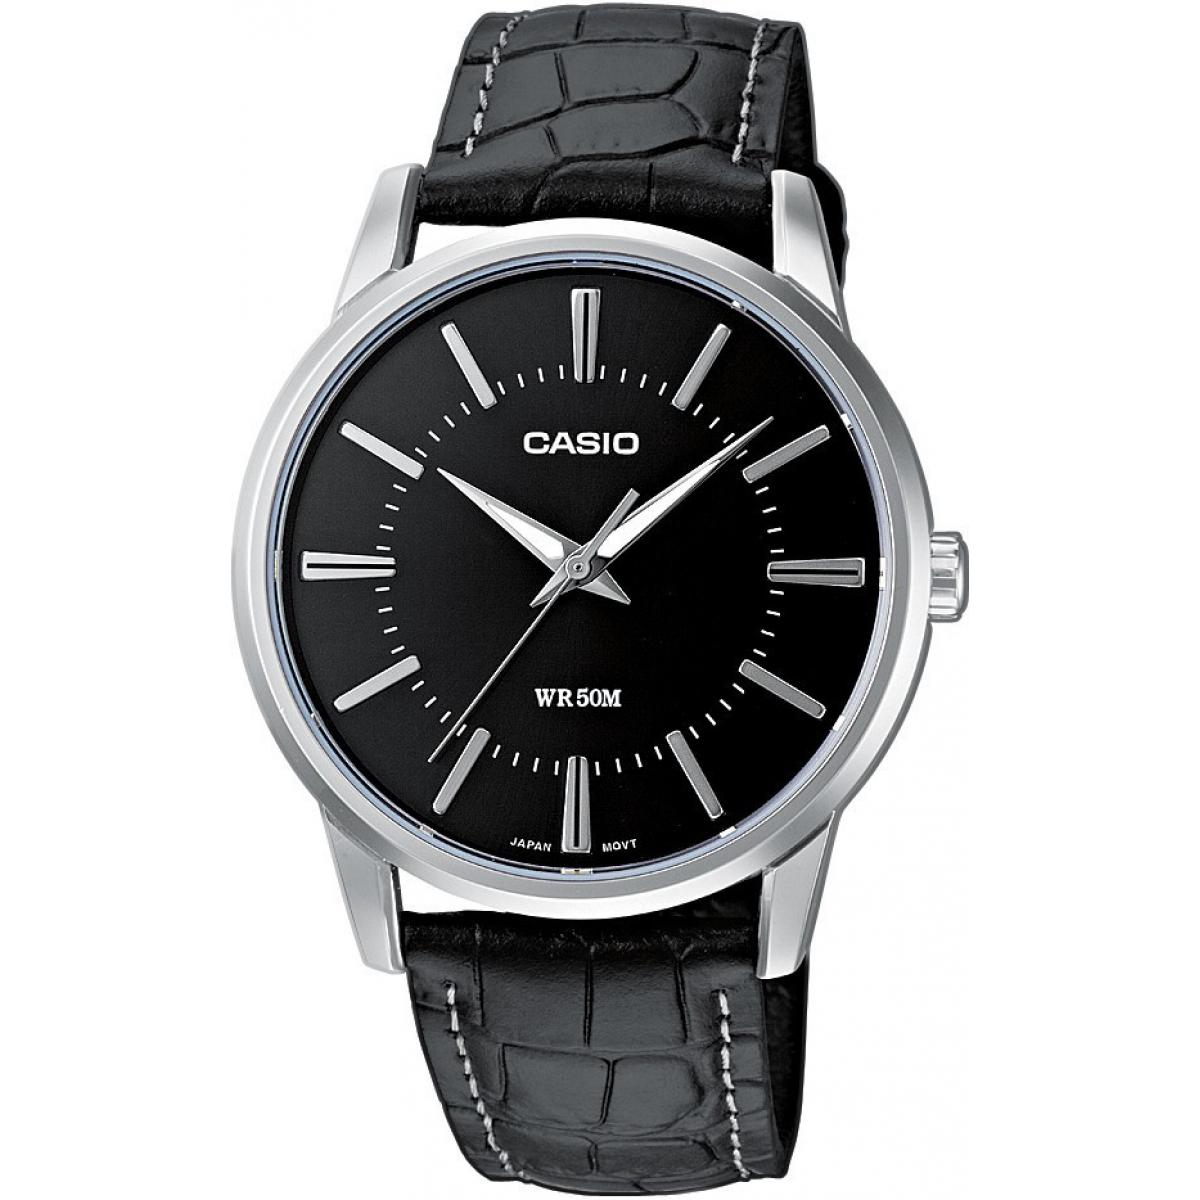 Montre Homme Casio Cuir Casio Collection MTP-1303PL-1AVEF